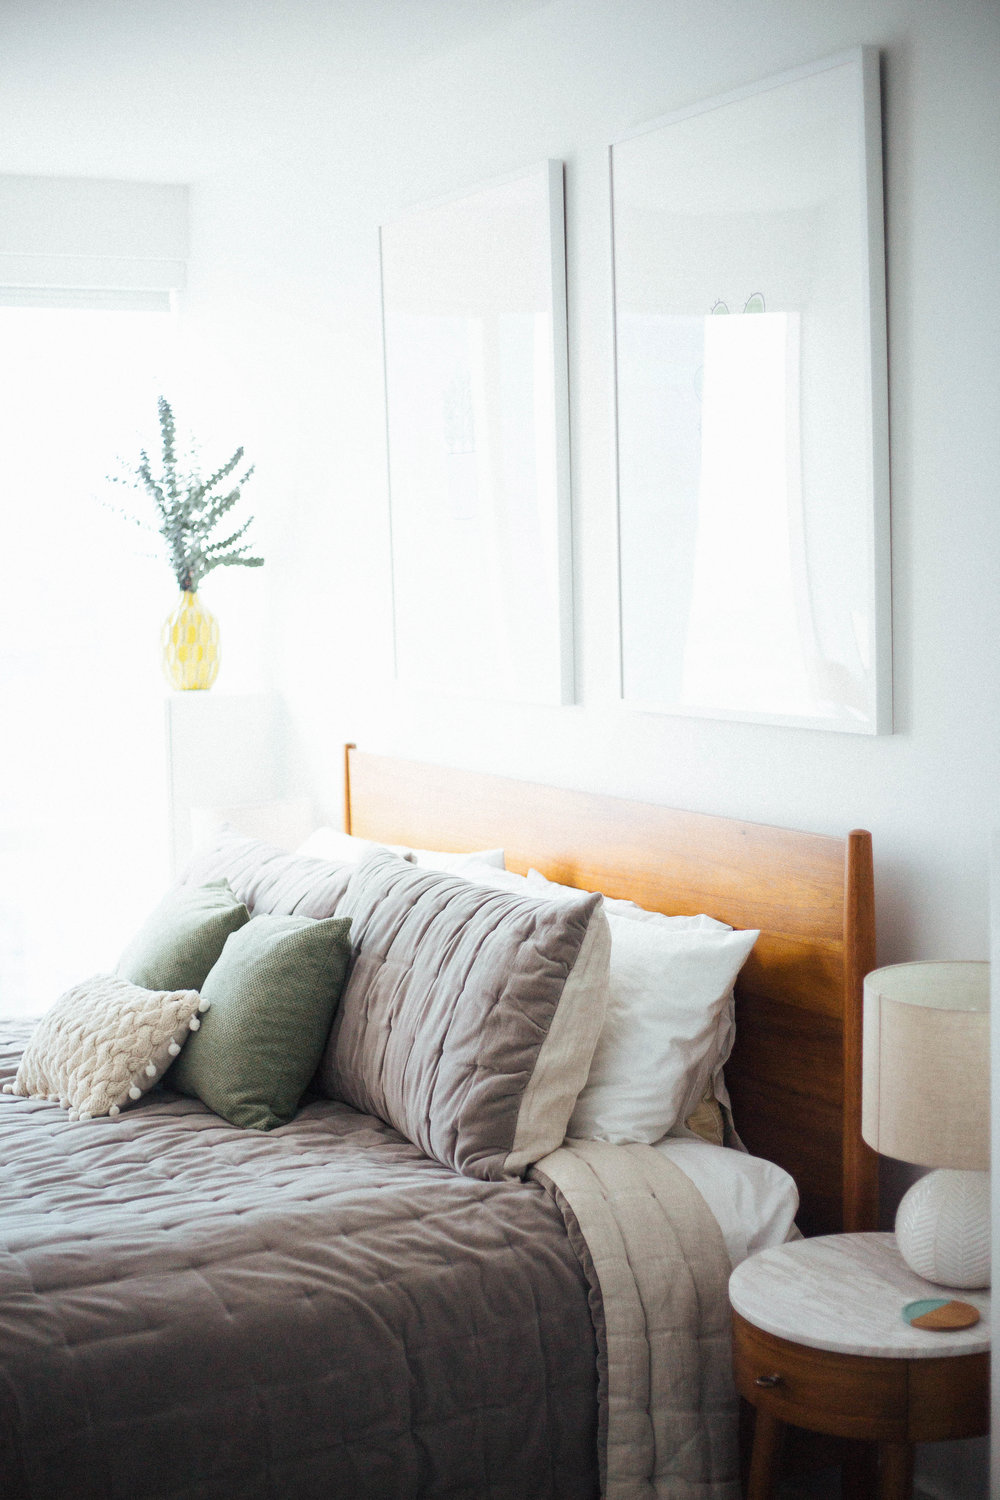 Redecorate My Living Room: Inspiralized: Before And After: Our Bedroom